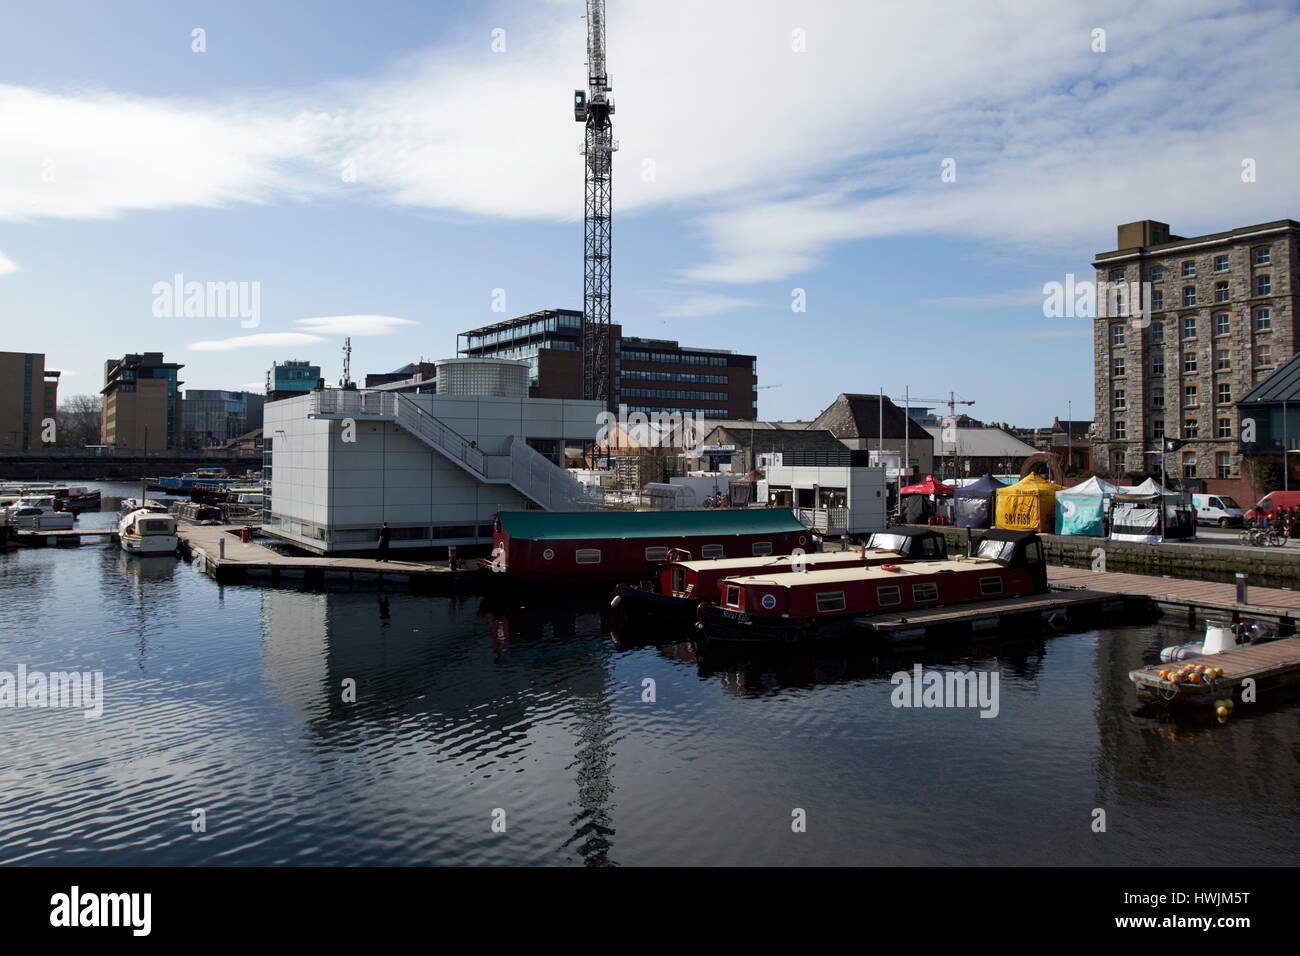 grand canal dock marina and waterways ireland visitors centre Dublin Republic of Ireland - Stock Image